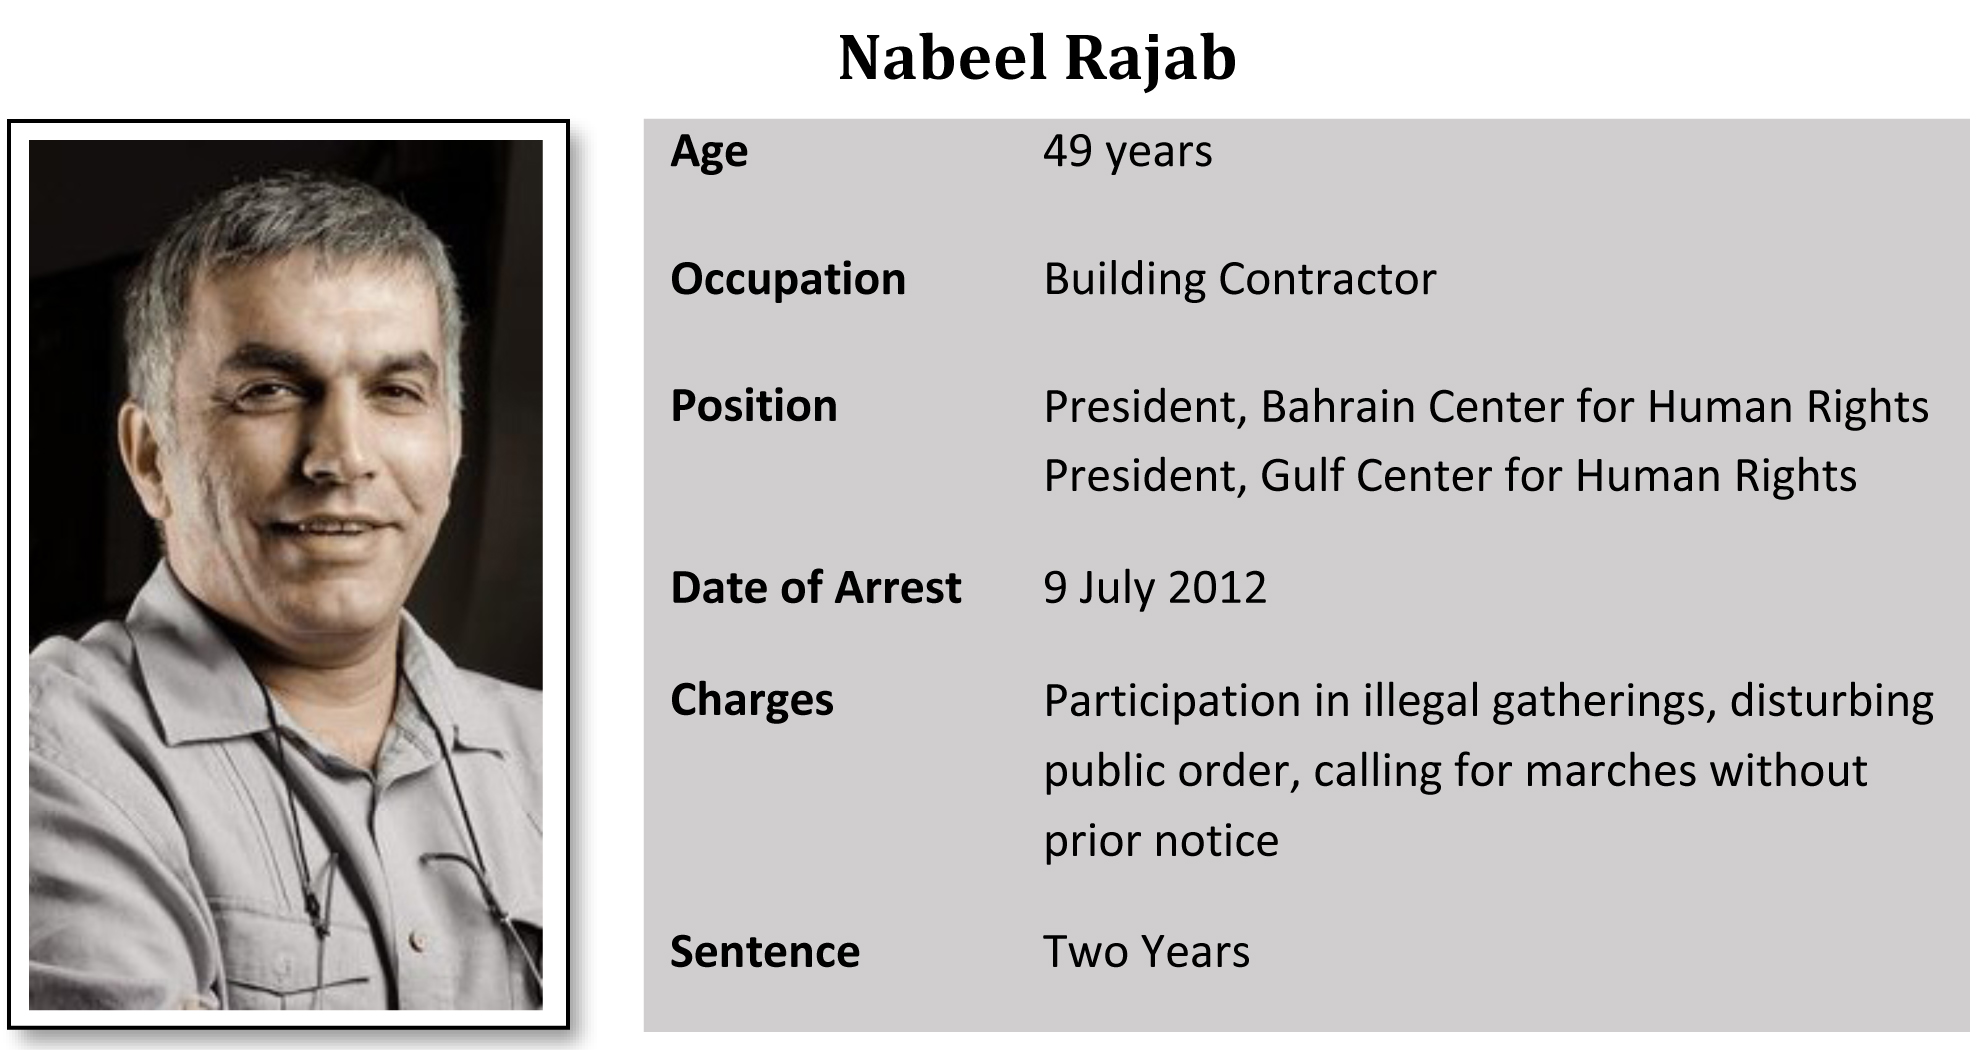 Microsoft Word - Champion for Justice - Nabeel Rajab.docx